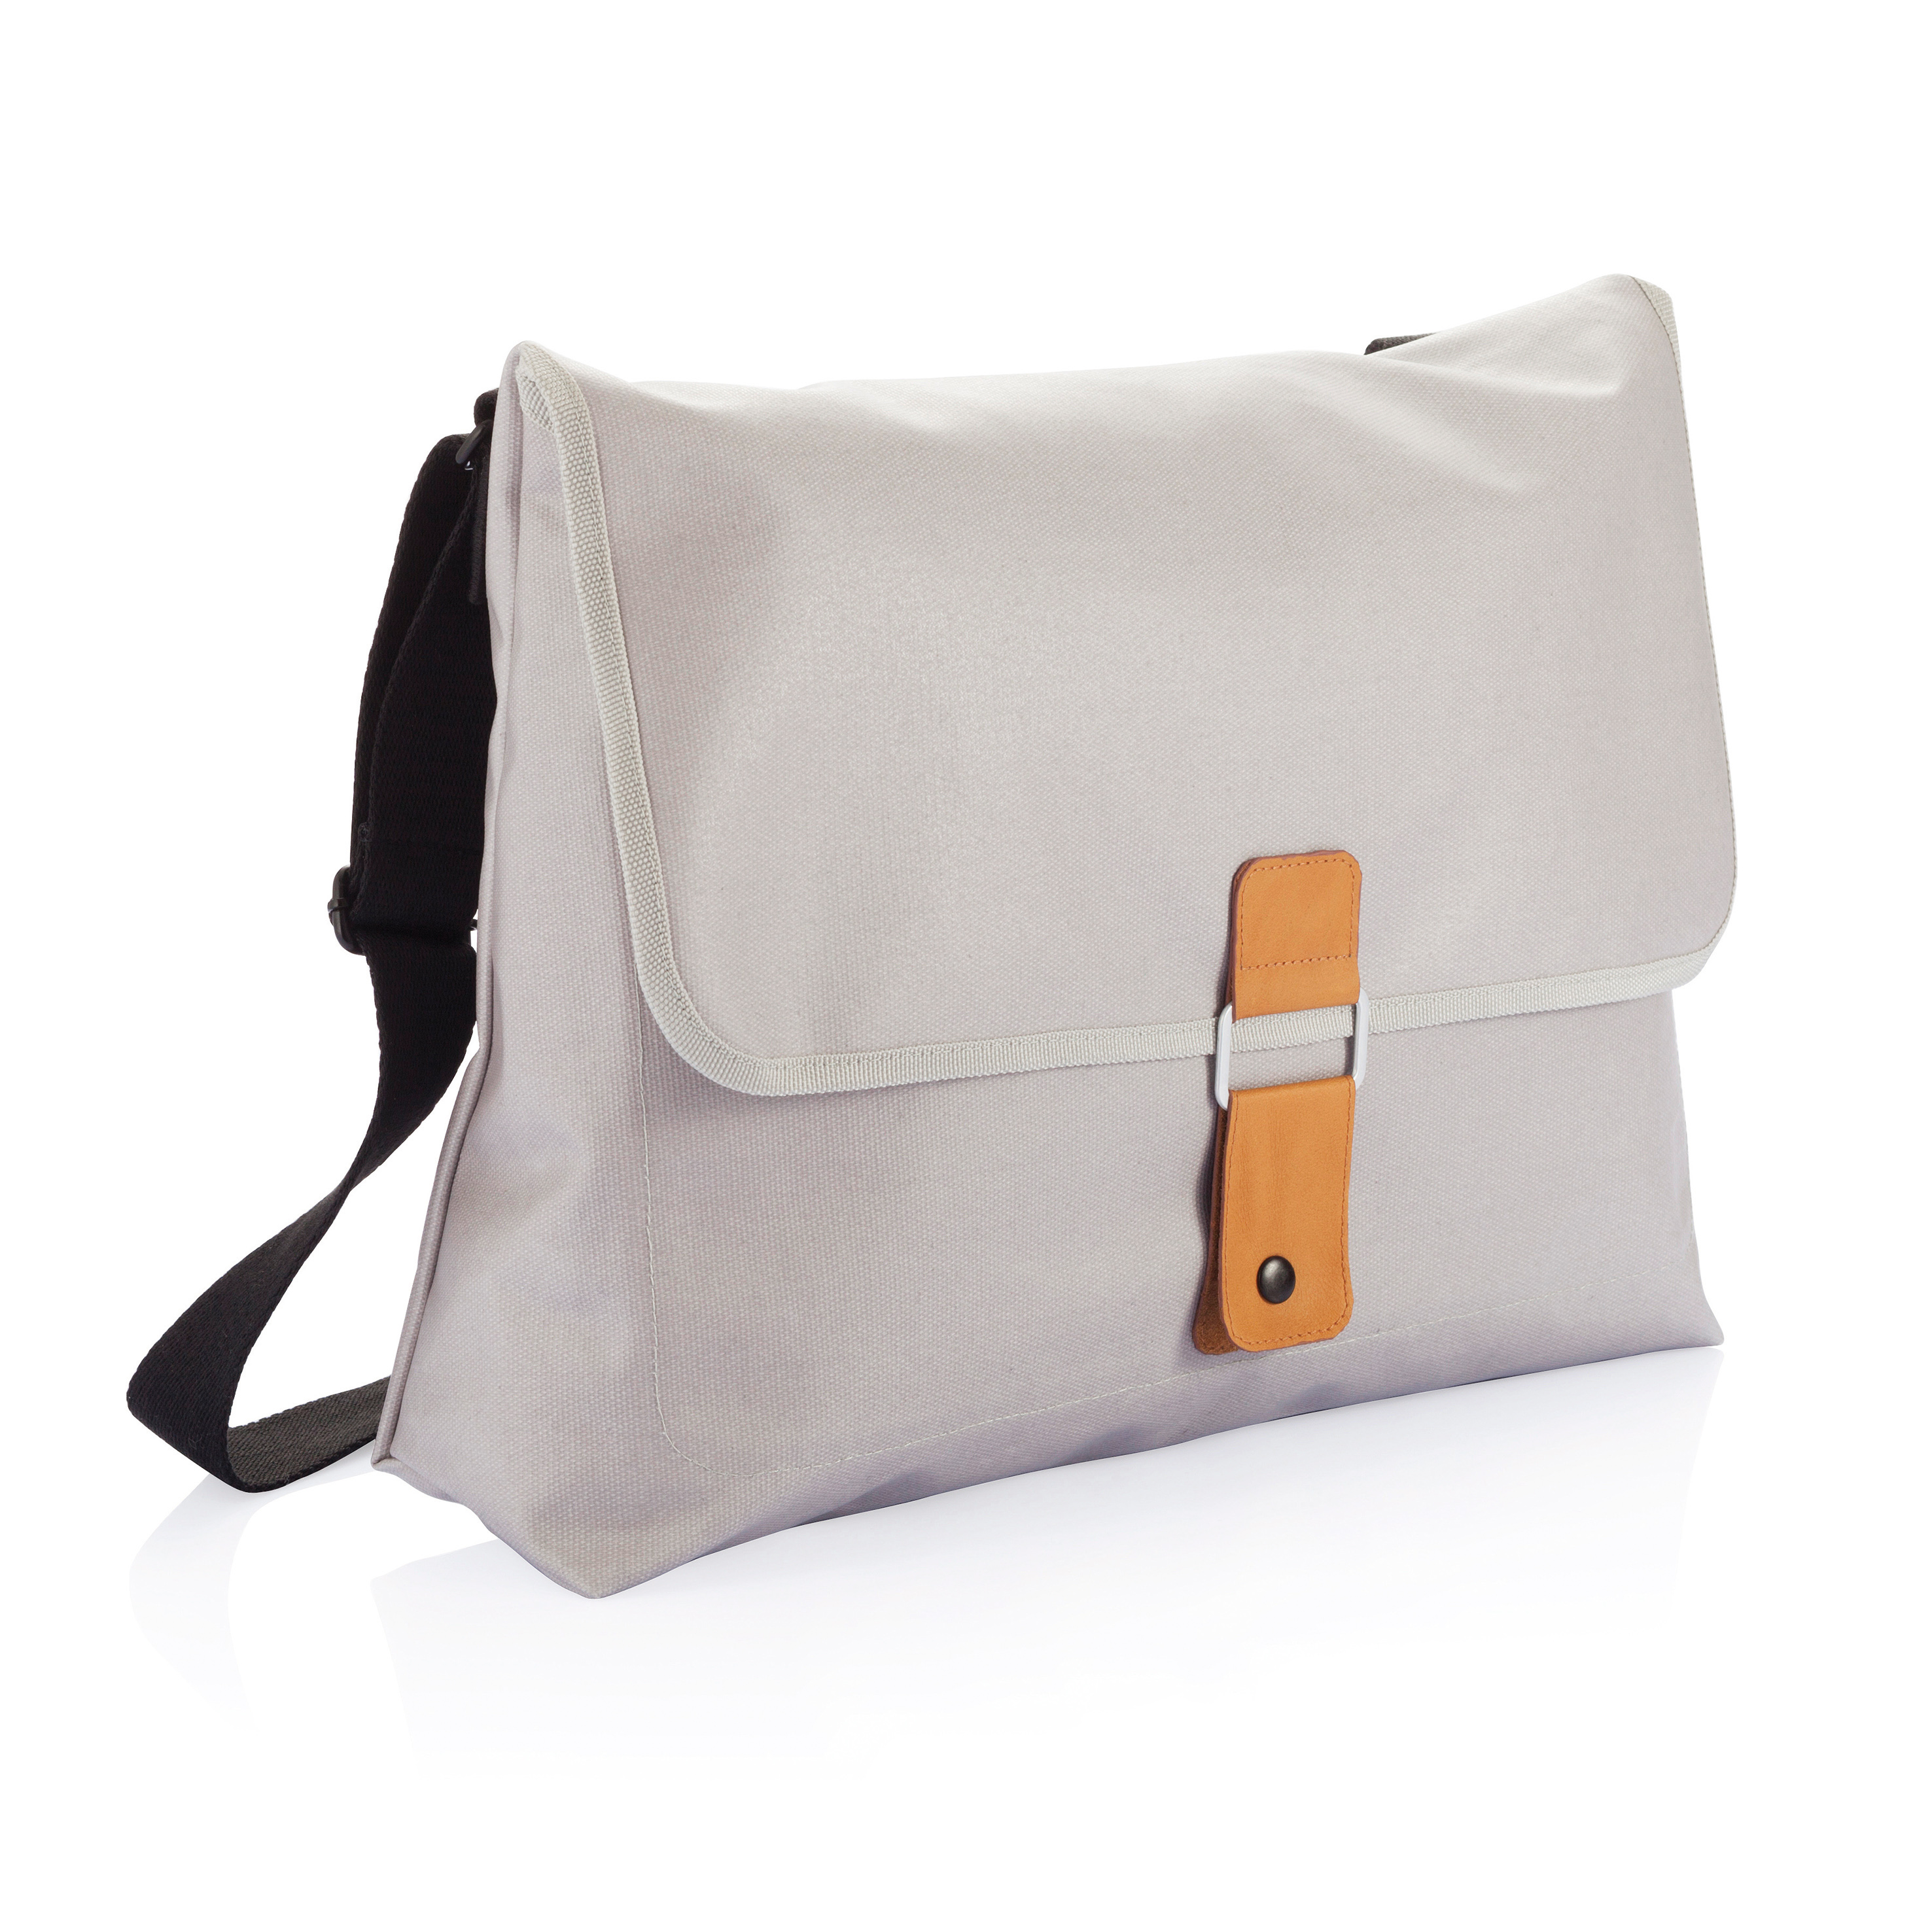 Pure messenger bag